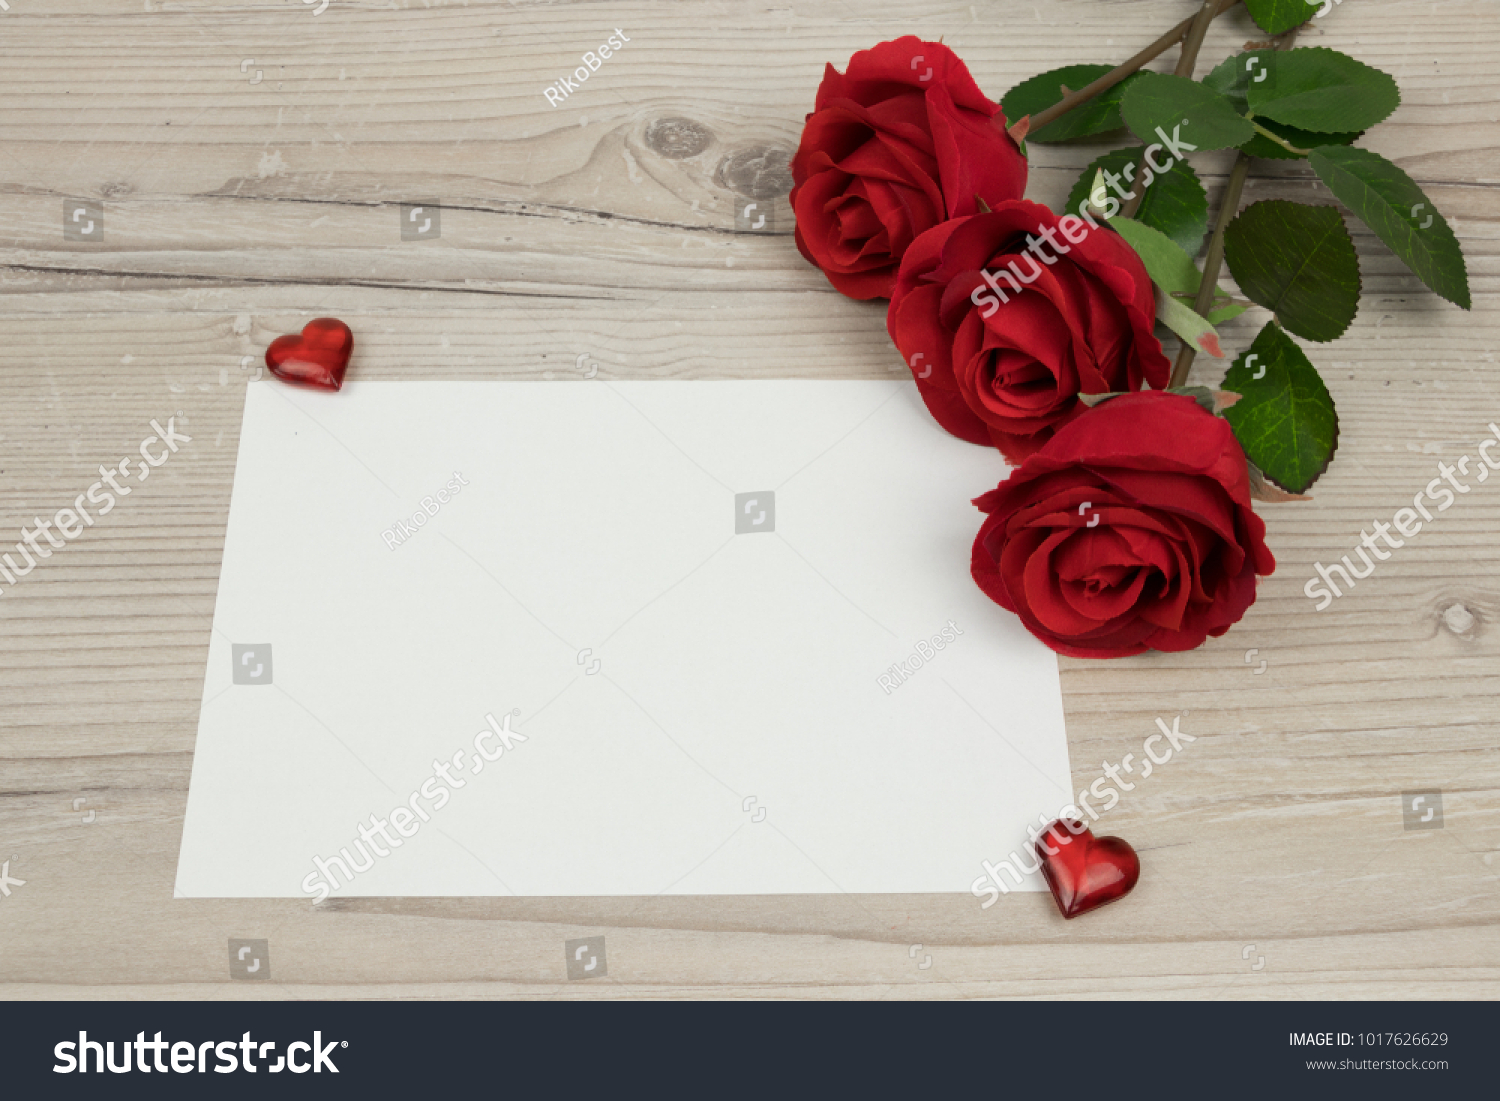 Red Roses And A Blank Invitation Card On Wooden Background